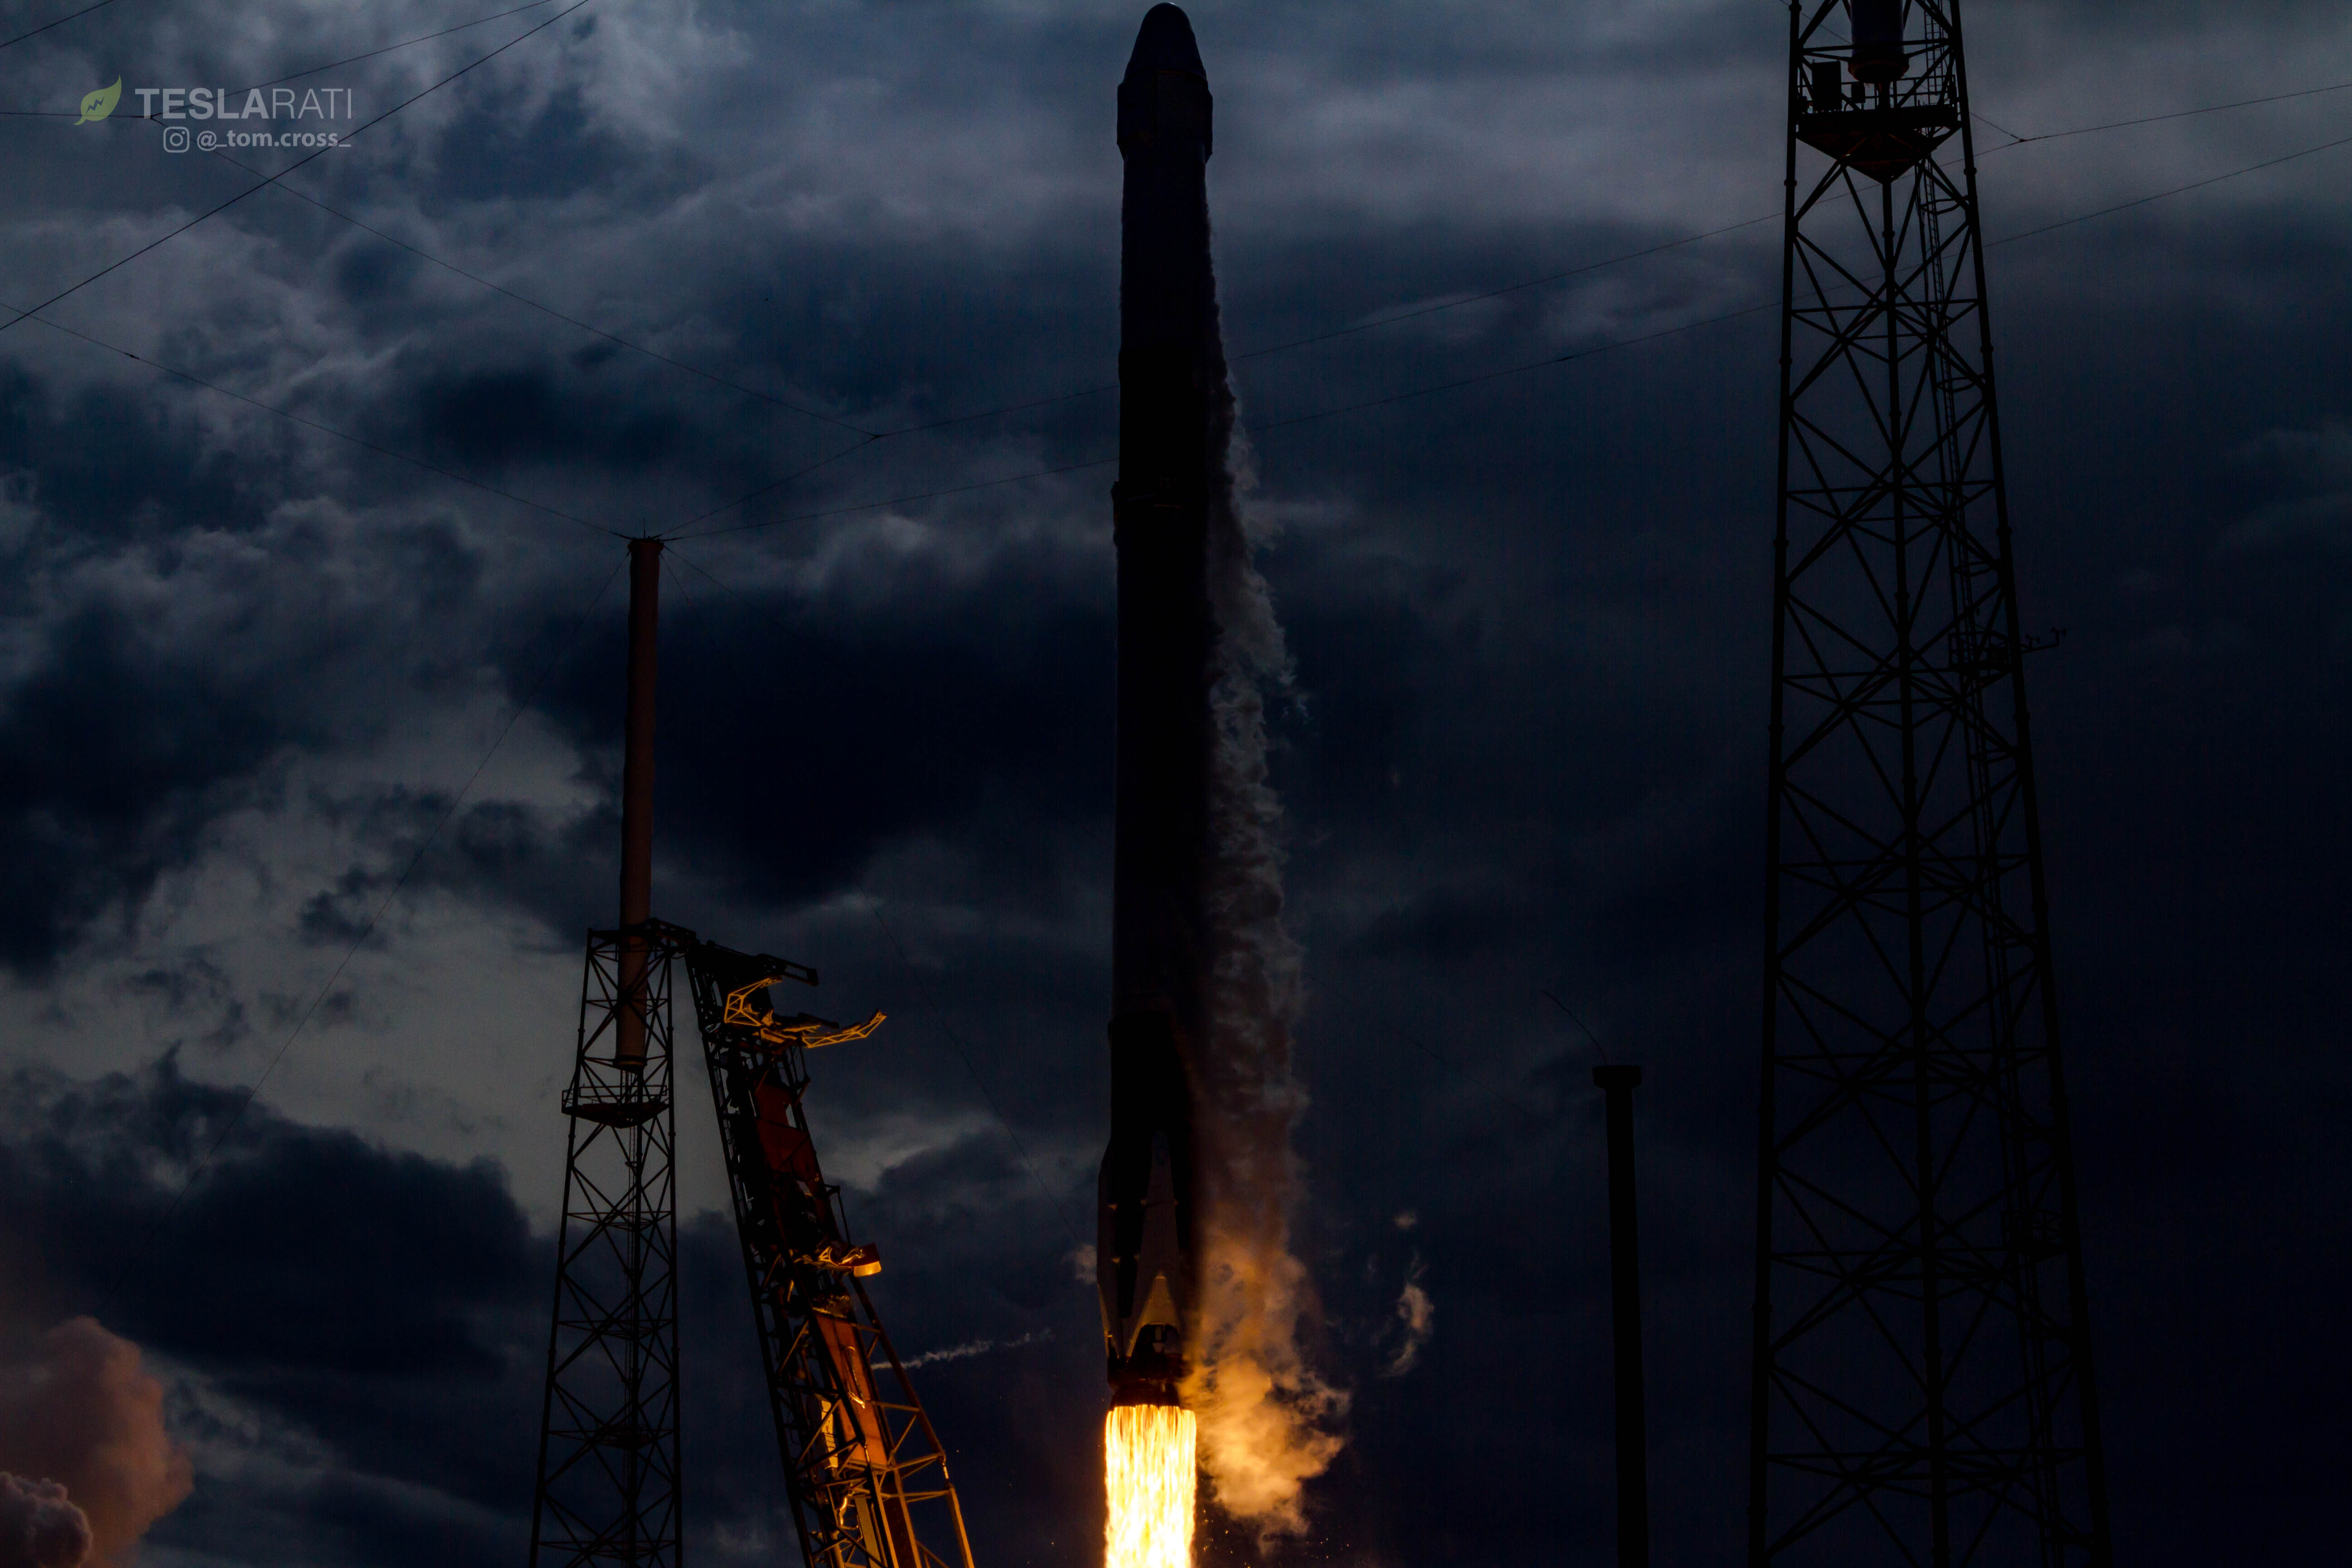 Falcon 9 1039 CRS14 sequence 4 (Tom Cross)